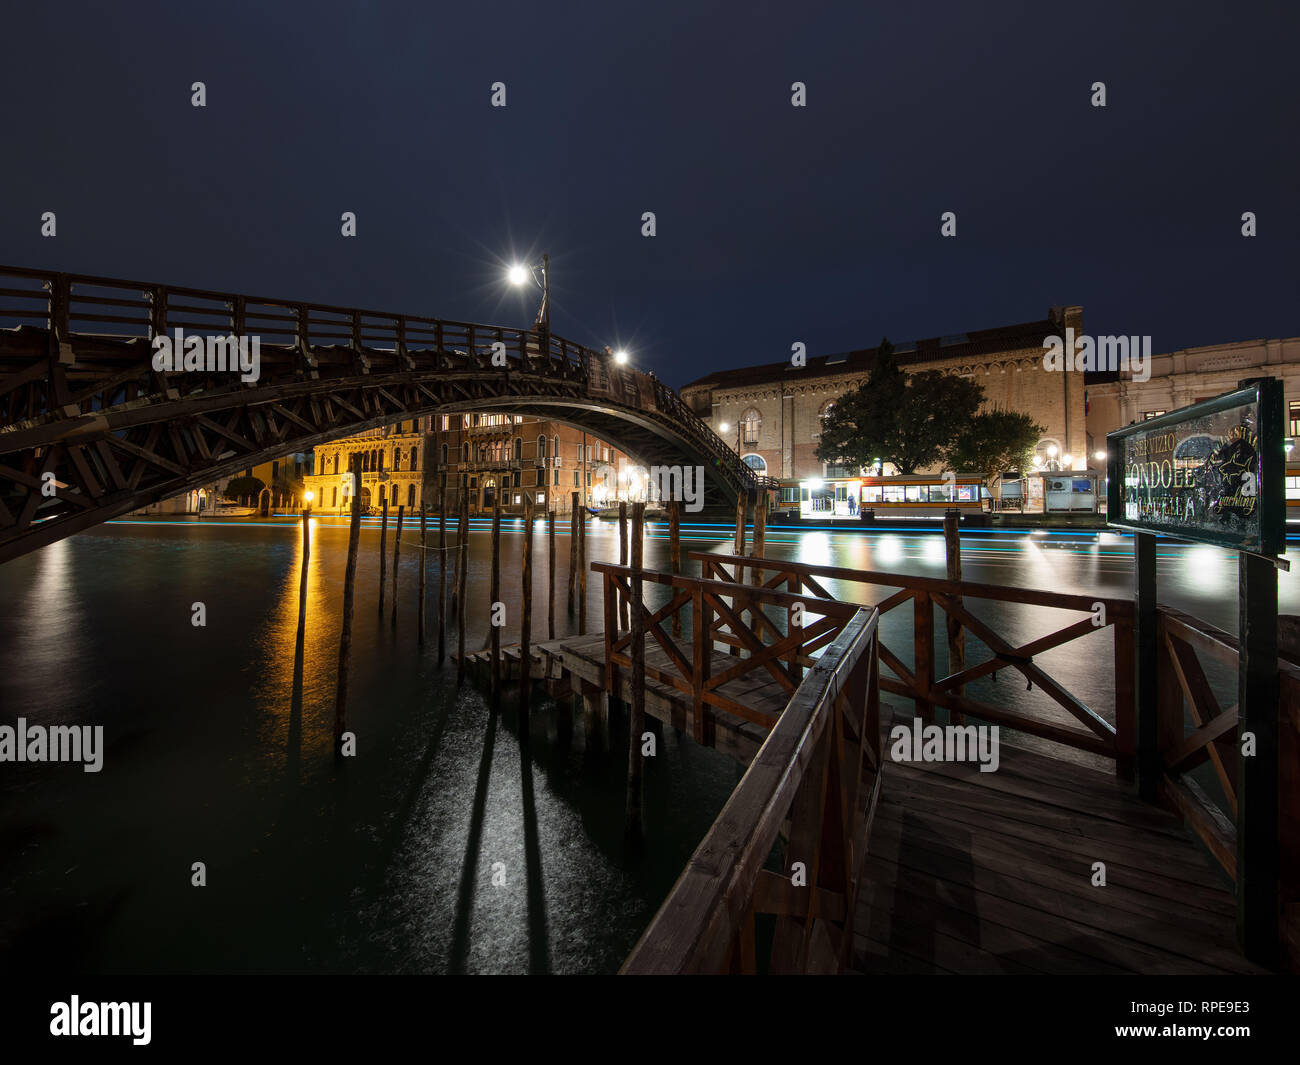 A beautiful shot of a Gondola Station in Venice, Italy. Looking over towards the Academia Bridge late one evening. - Stock Image